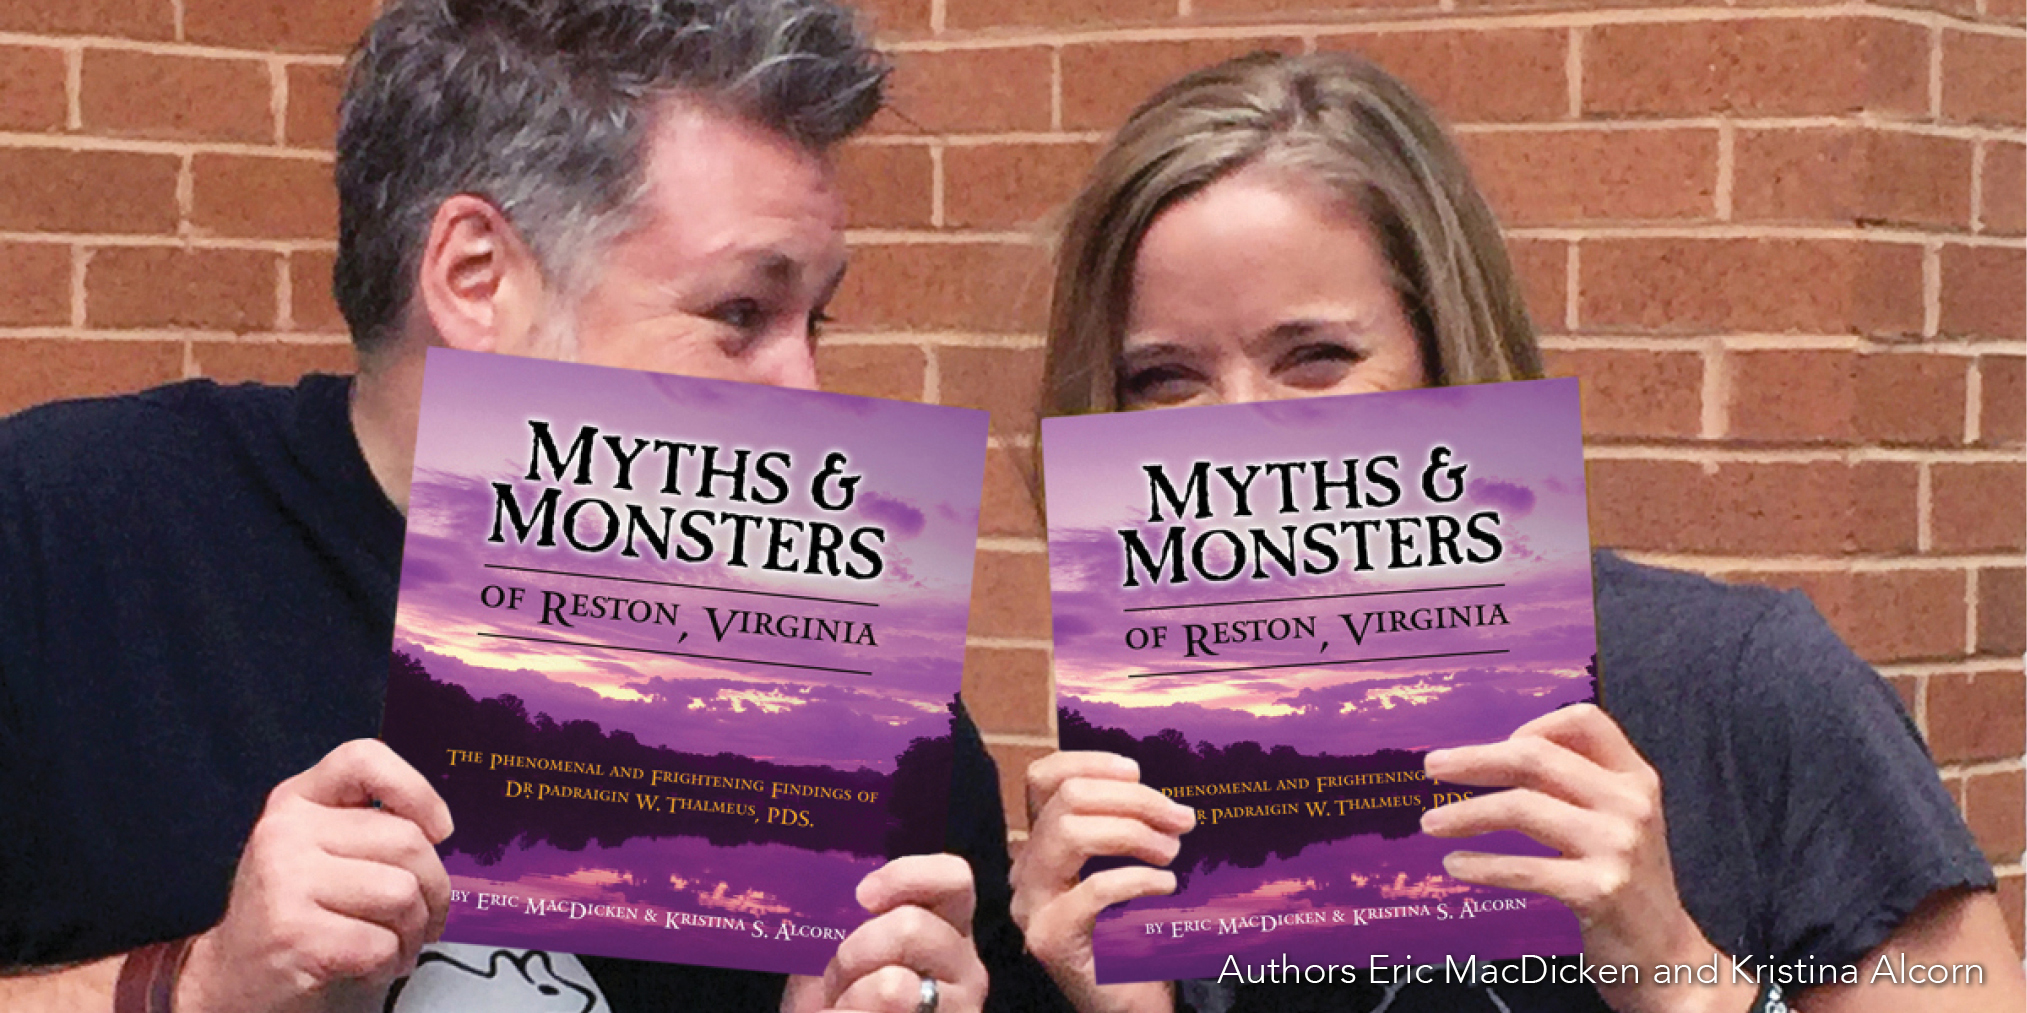 Myths and Monster authors Eric MacDicken and Kristina Alcorn